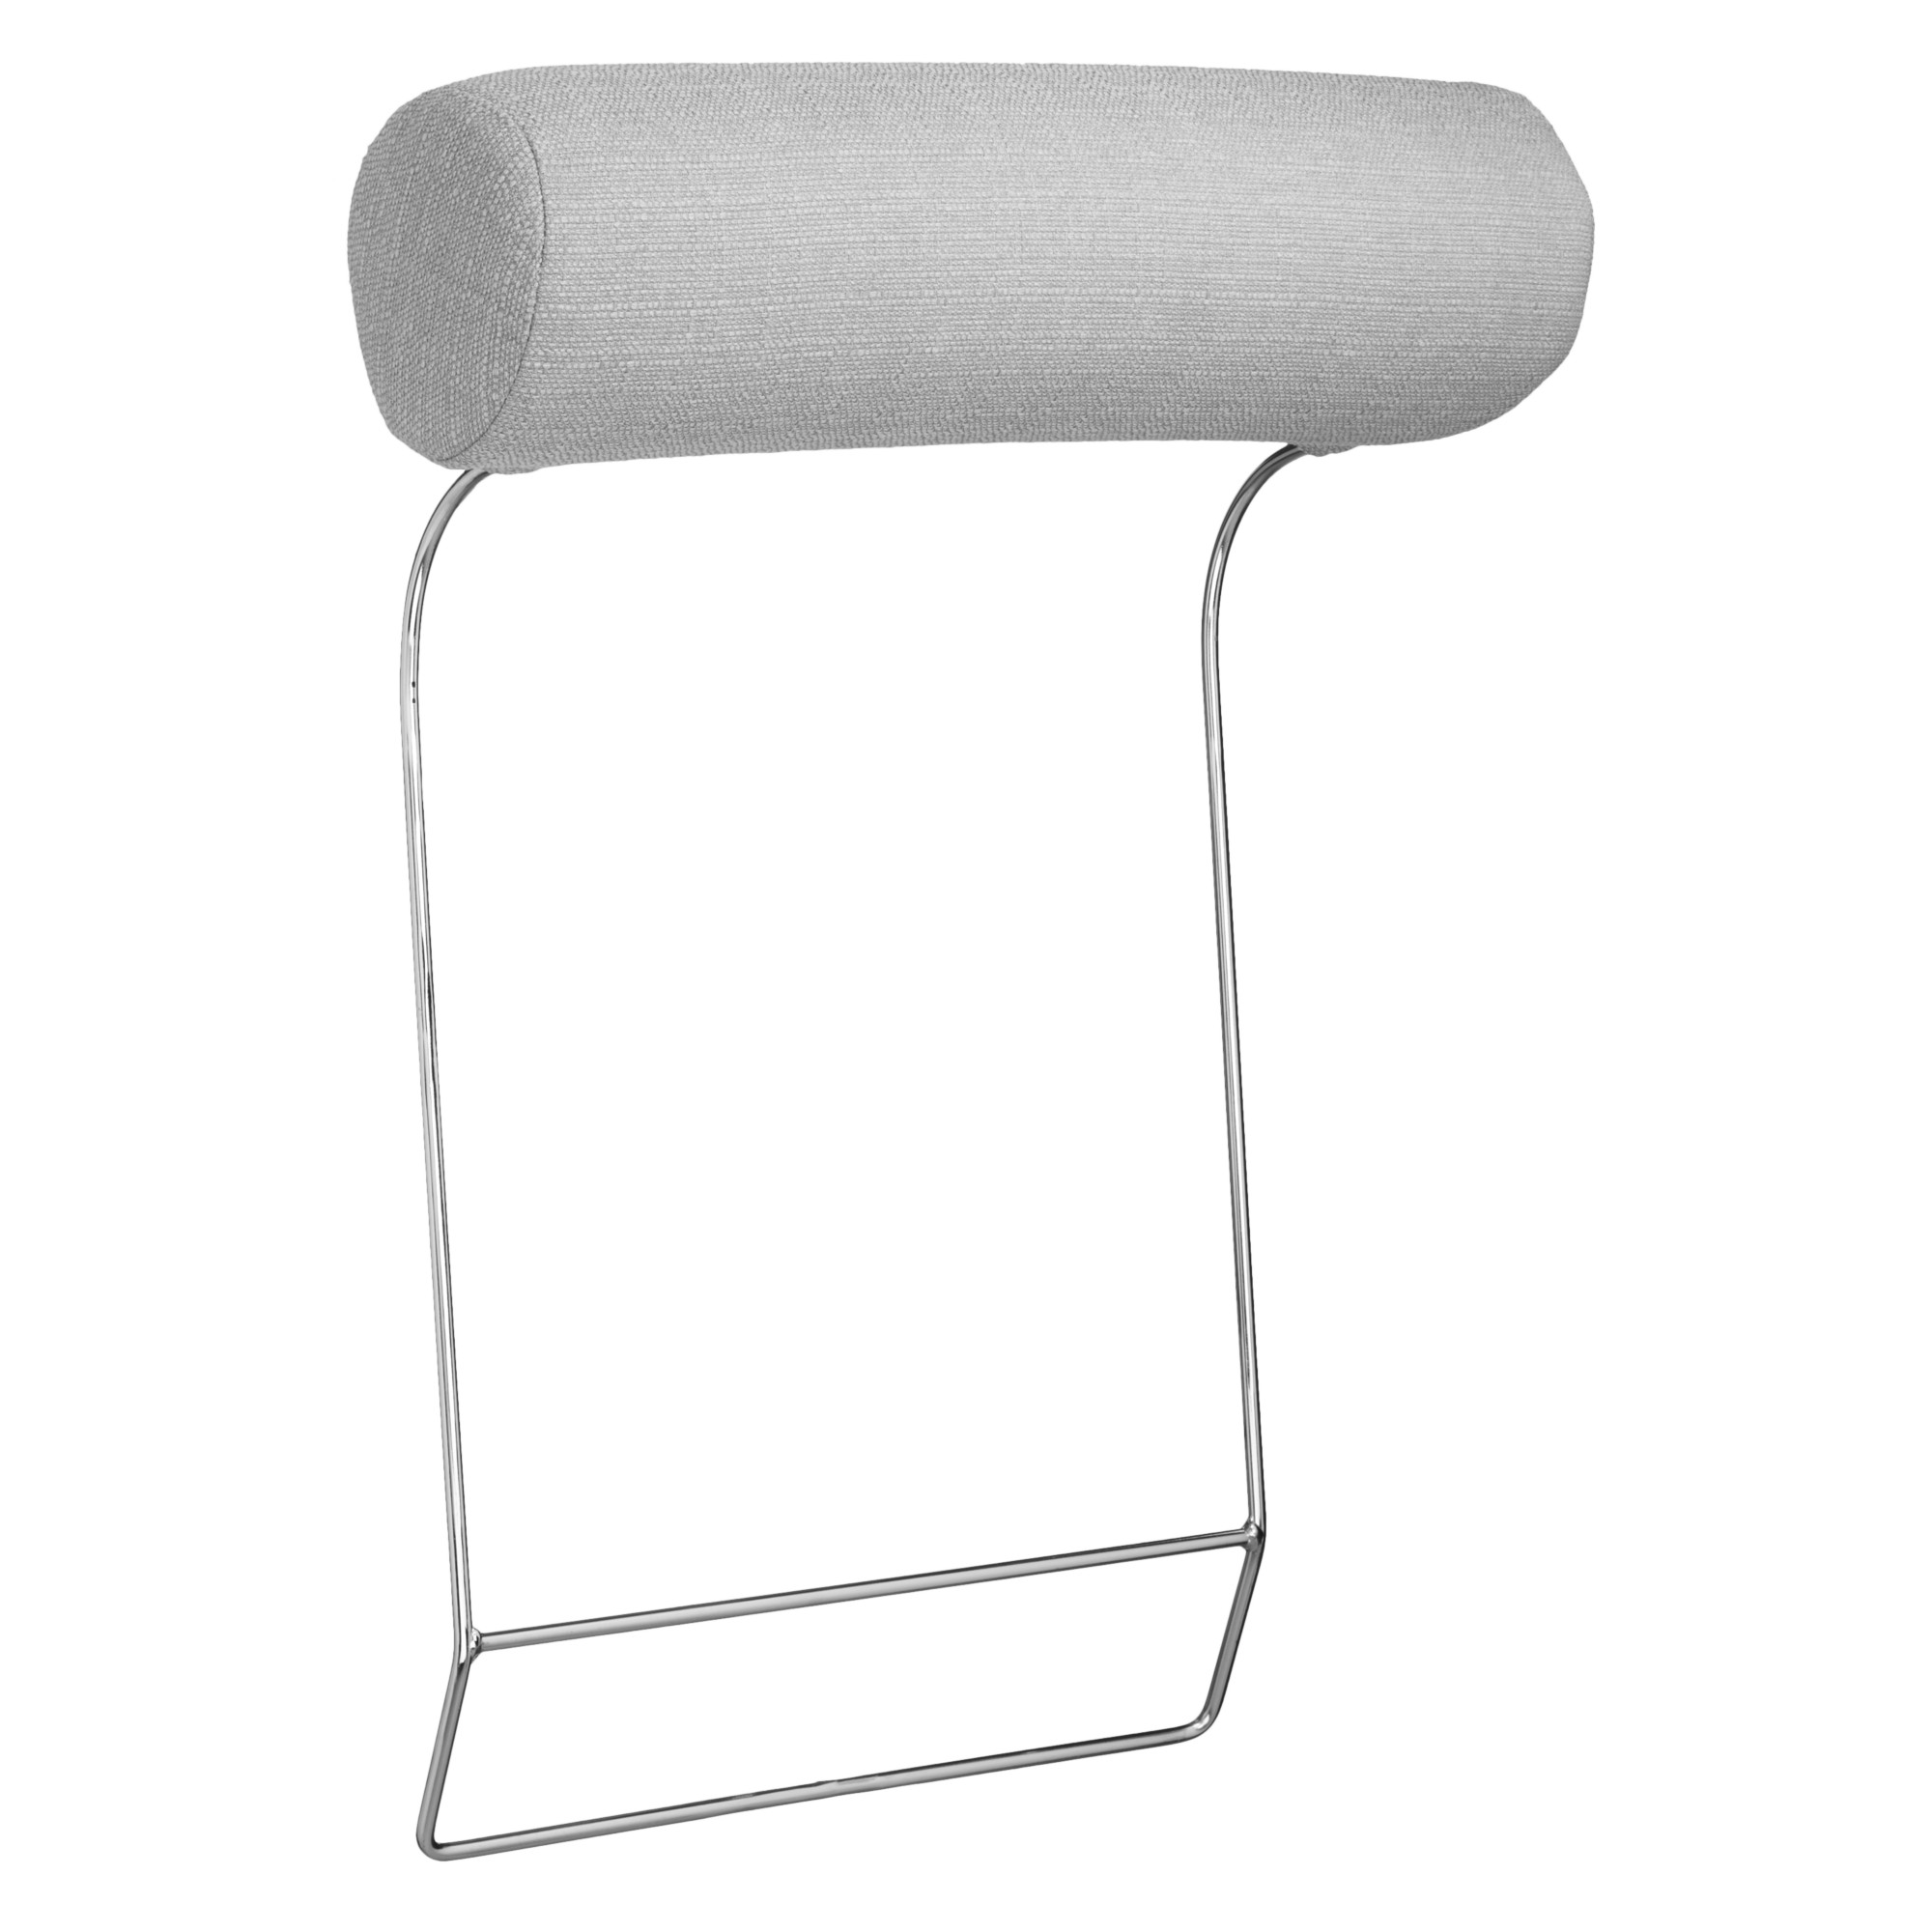 John Lewis Felix Headrest